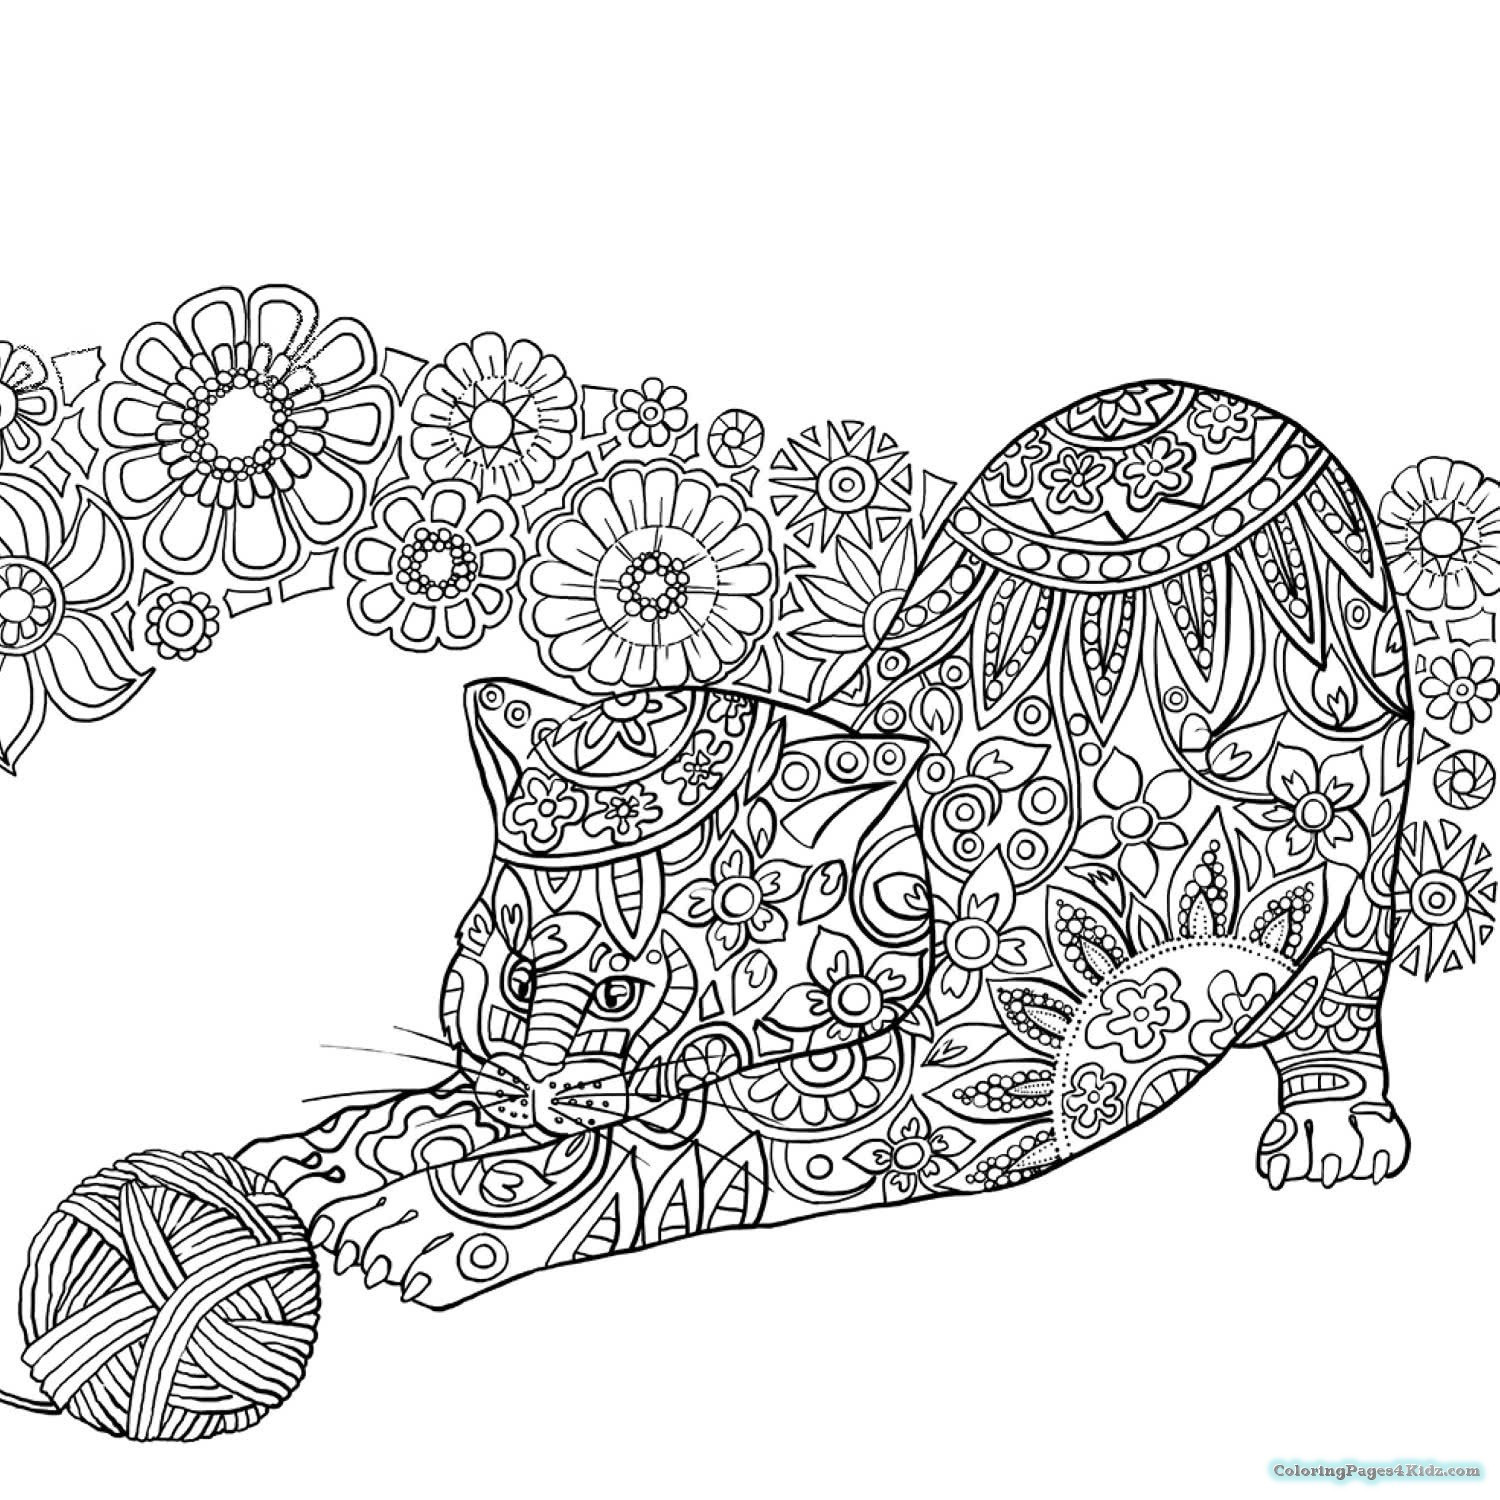 Best ideas about Zentangle Coloring Pages For Kids . Save or Pin Hard Zentangle Coloring Pages Now.